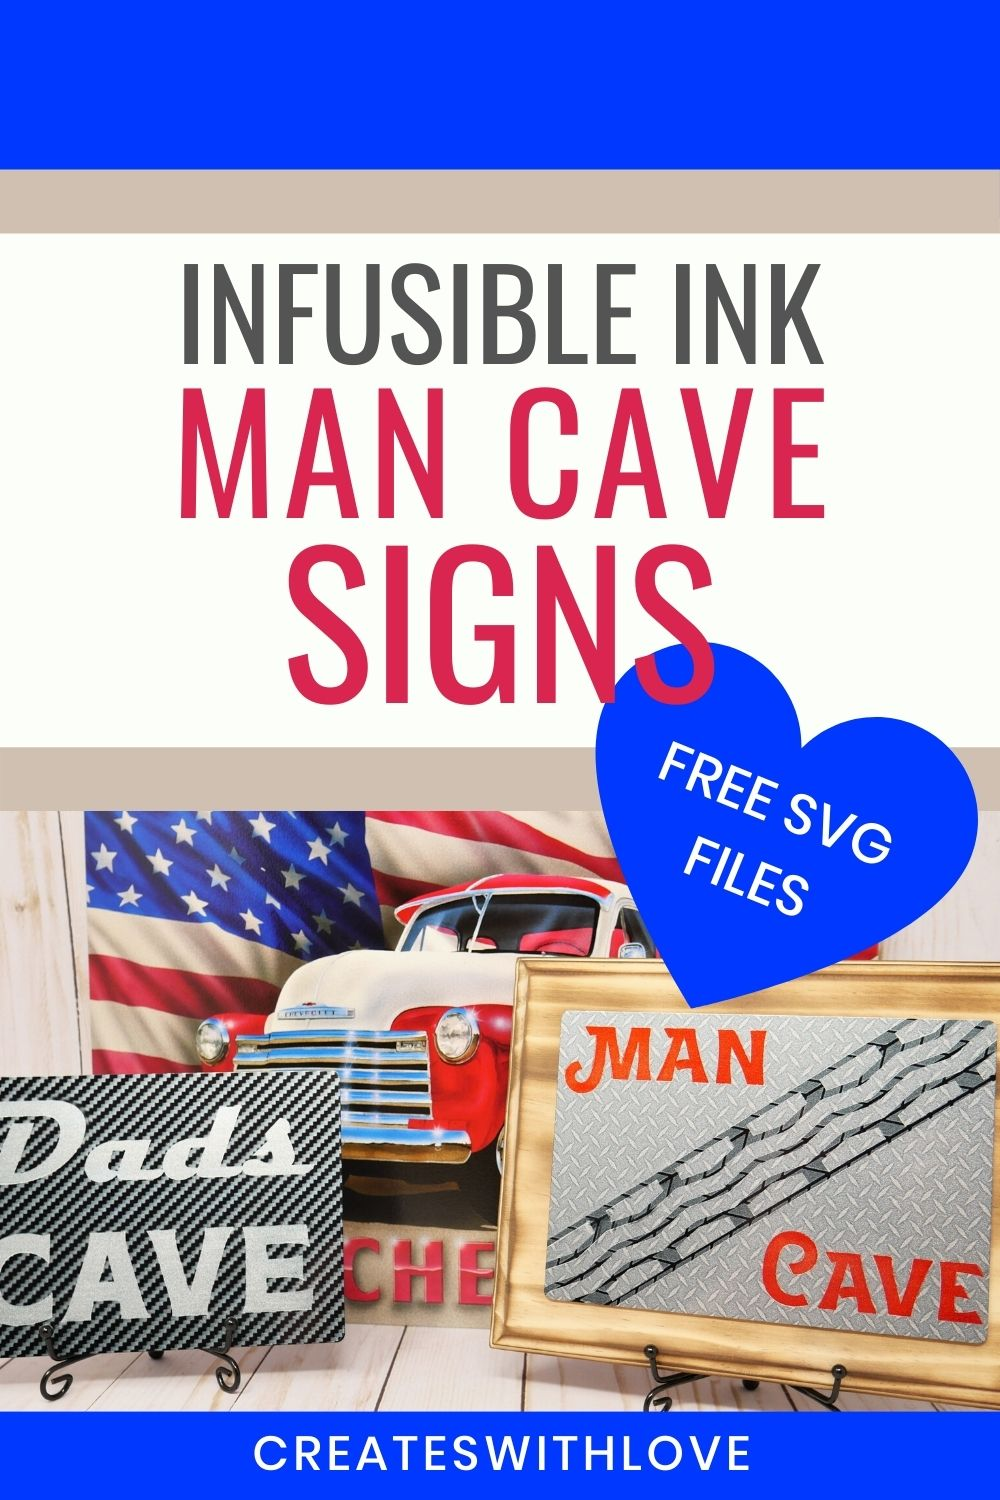 Infusible Ink Man Cave Signs.  One says Dad's Cave and the other sign says Man Cave.